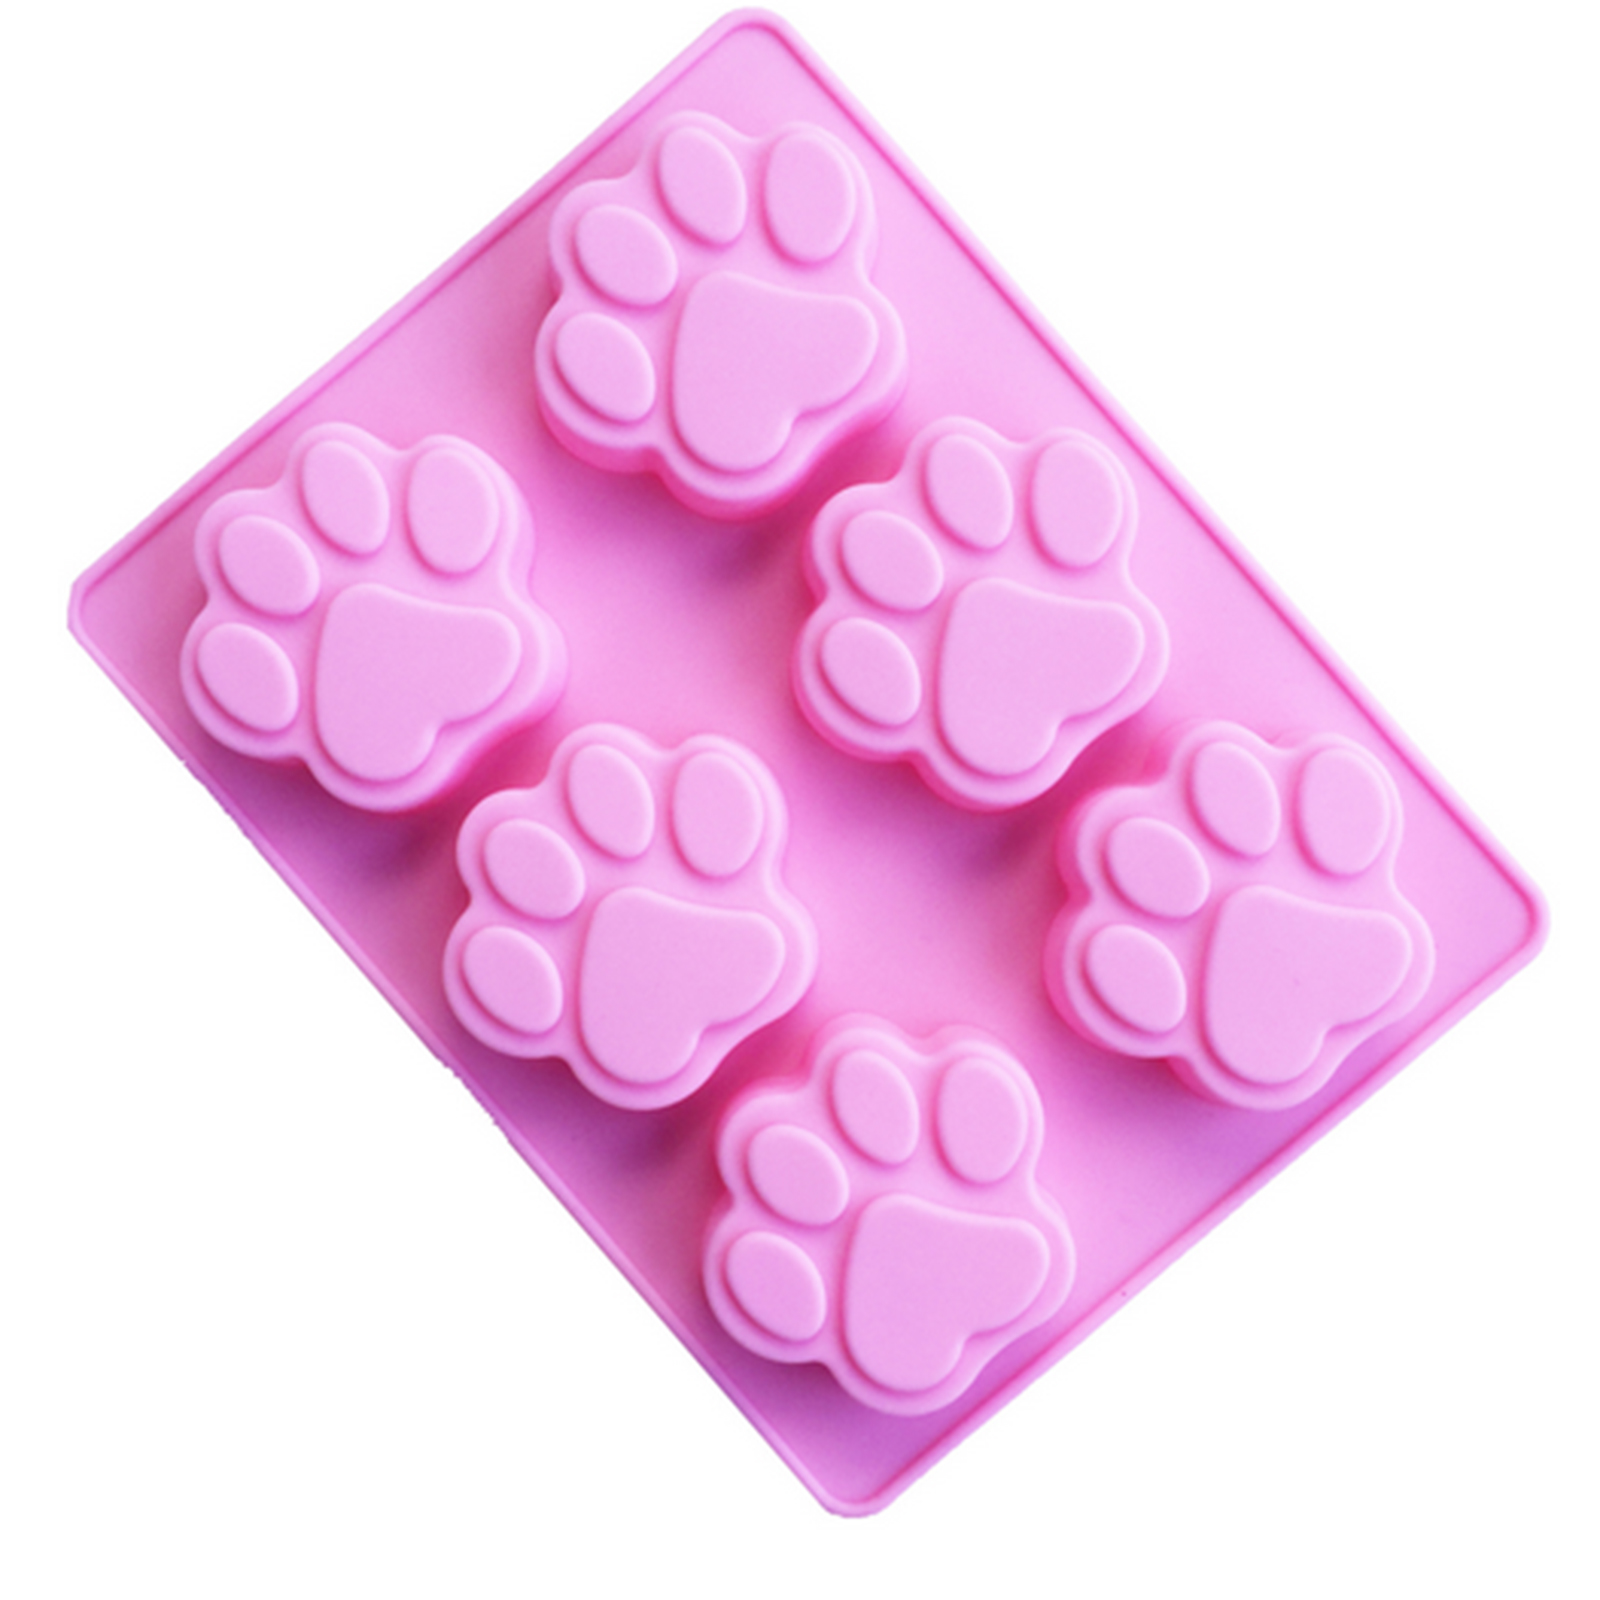 Baking-Mold Chocolate-Soap Fondant-Cake-Mould Cat Paw Print Handmade Candy Silicone TSLM1 title=